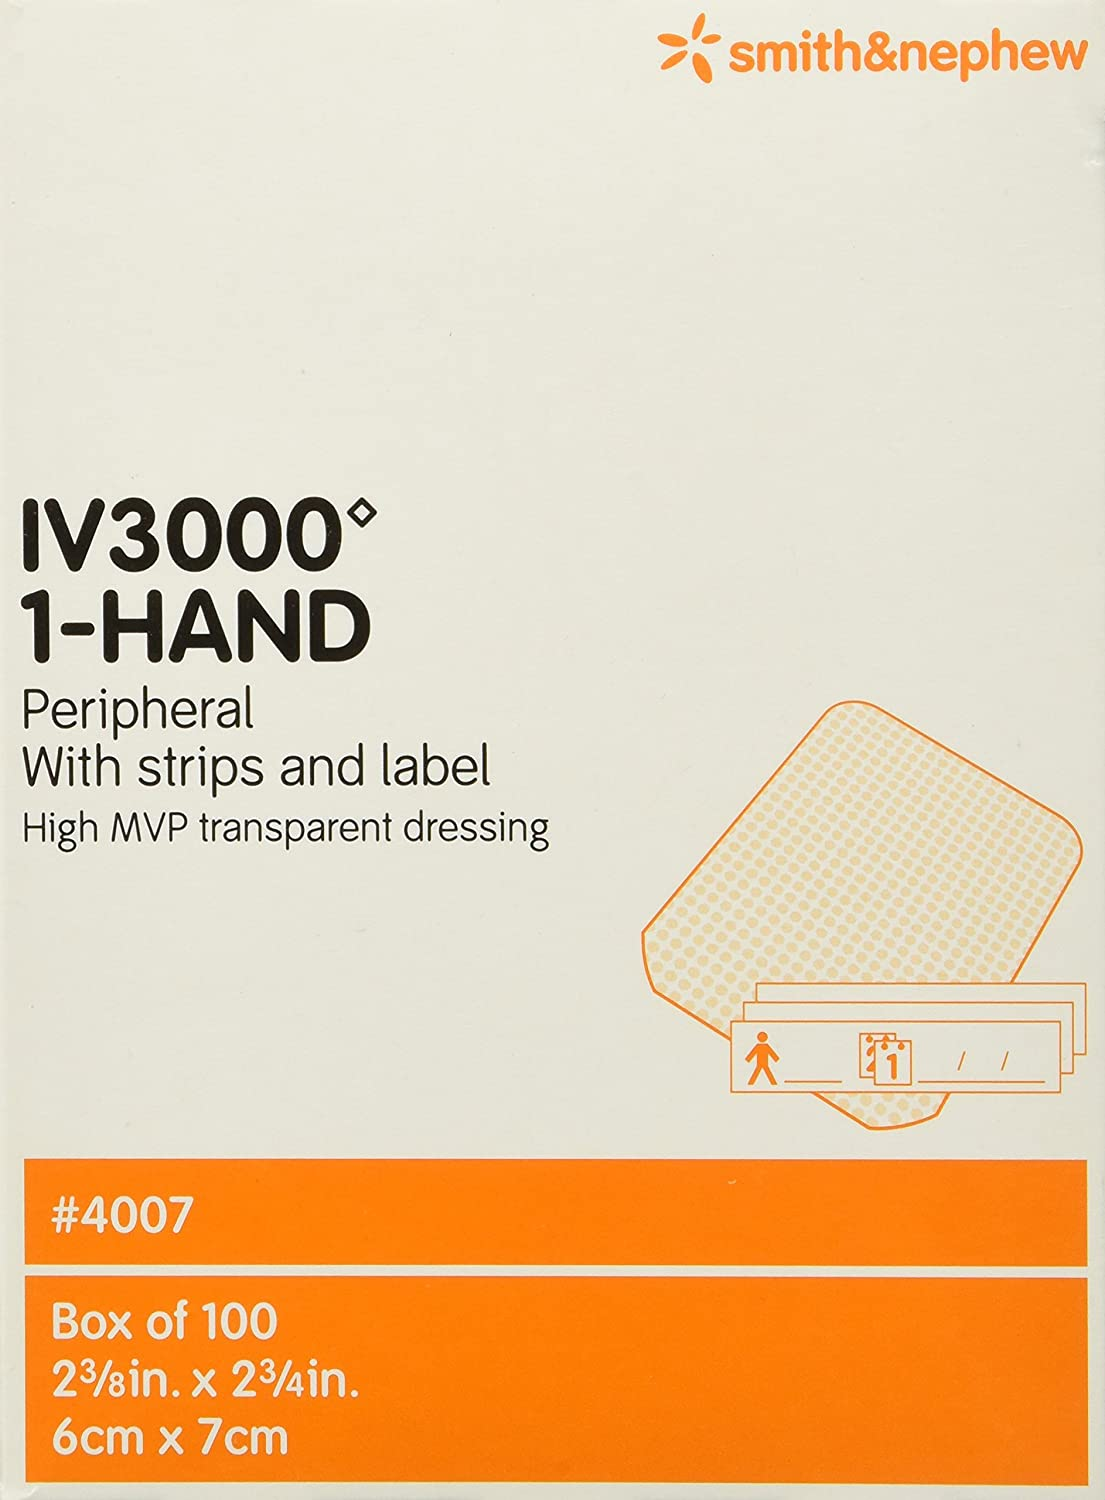 transparent dressing iv3000